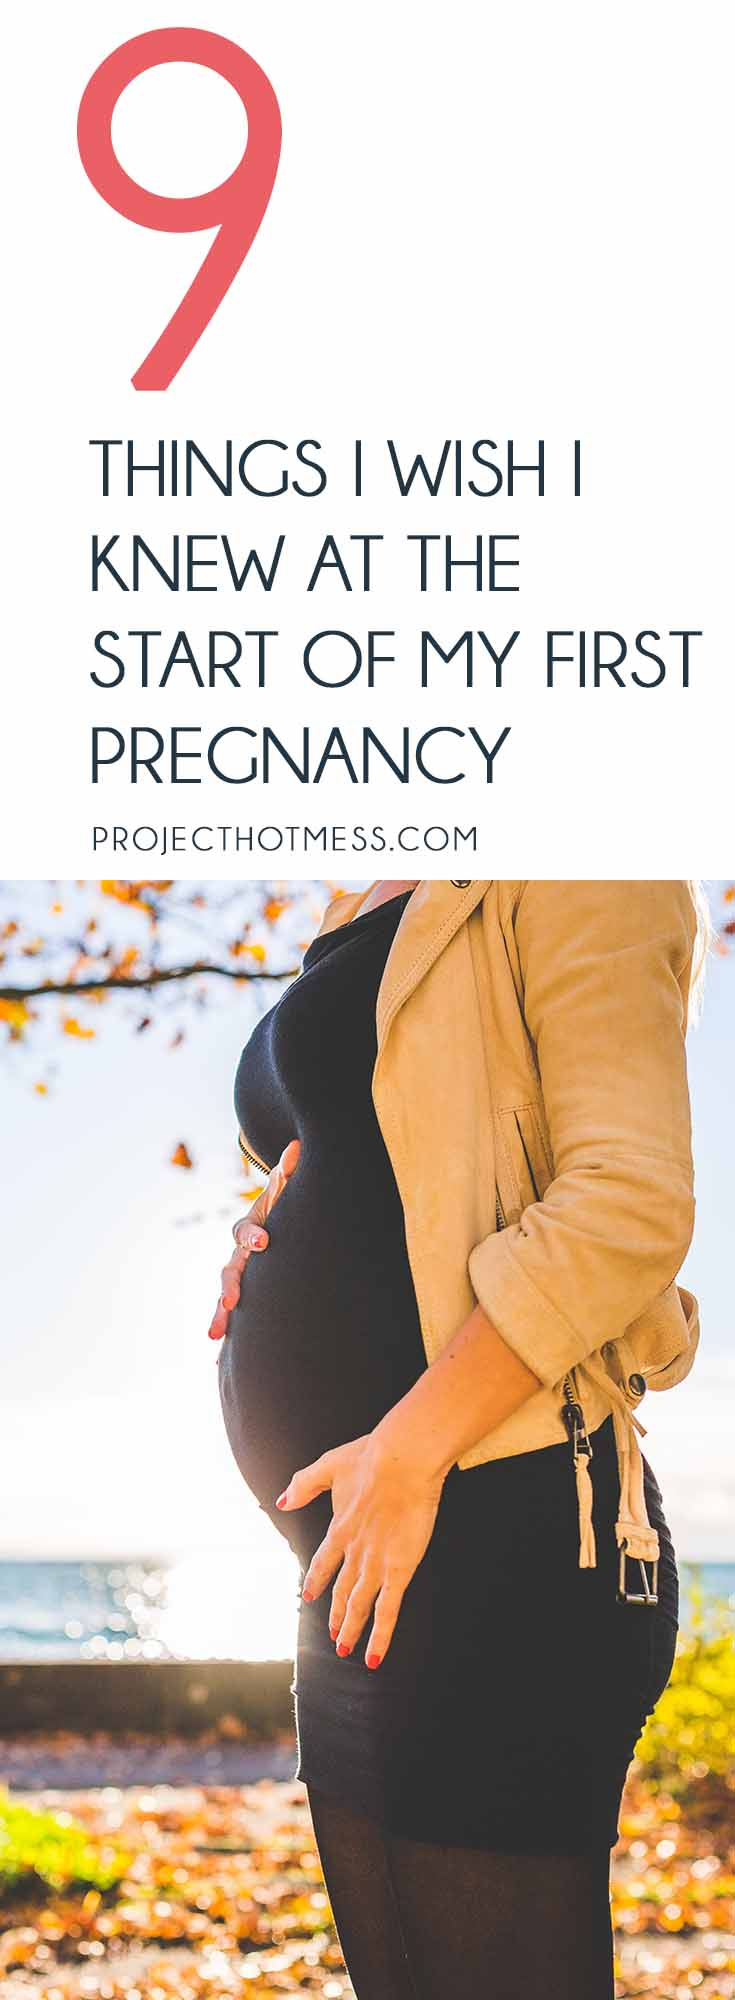 It wasn't until I looked back on my first pregnancy that I realised just how little I knew. I had no idea what I was in for - and I know many women are in the same boat. It can be hard to know where to start! Here are some of the things I wish I knew at the start of my first pregnancy. #pregnancy #pregnantlife #pregnant